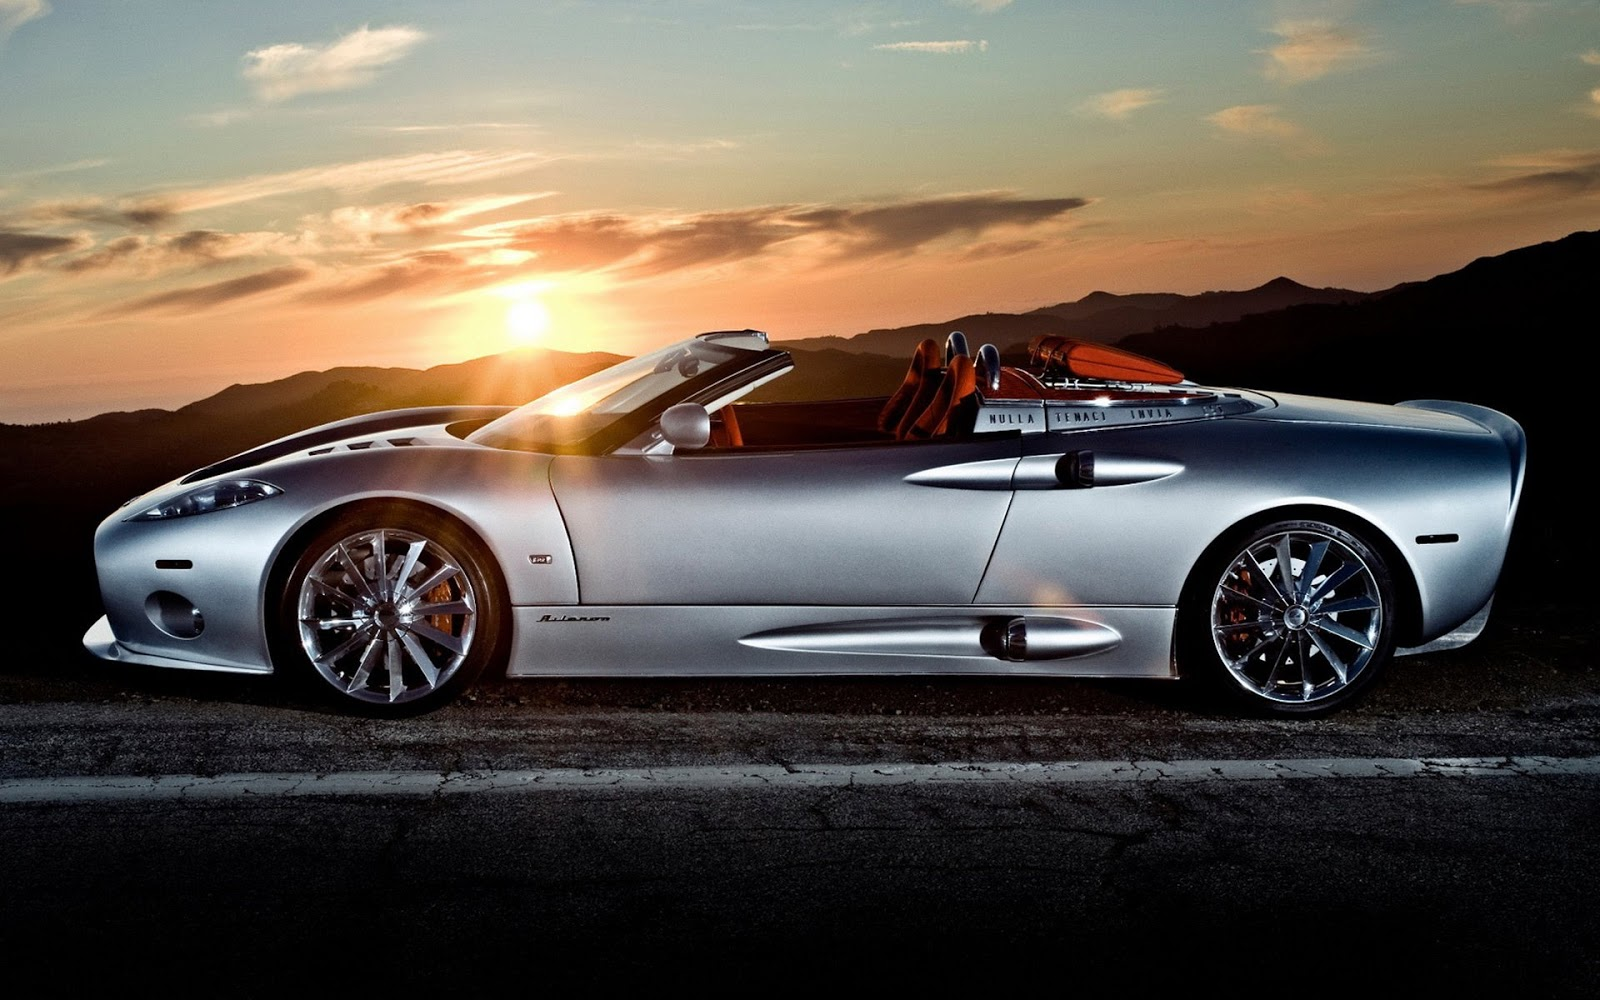 Spyker spyder photo - 3